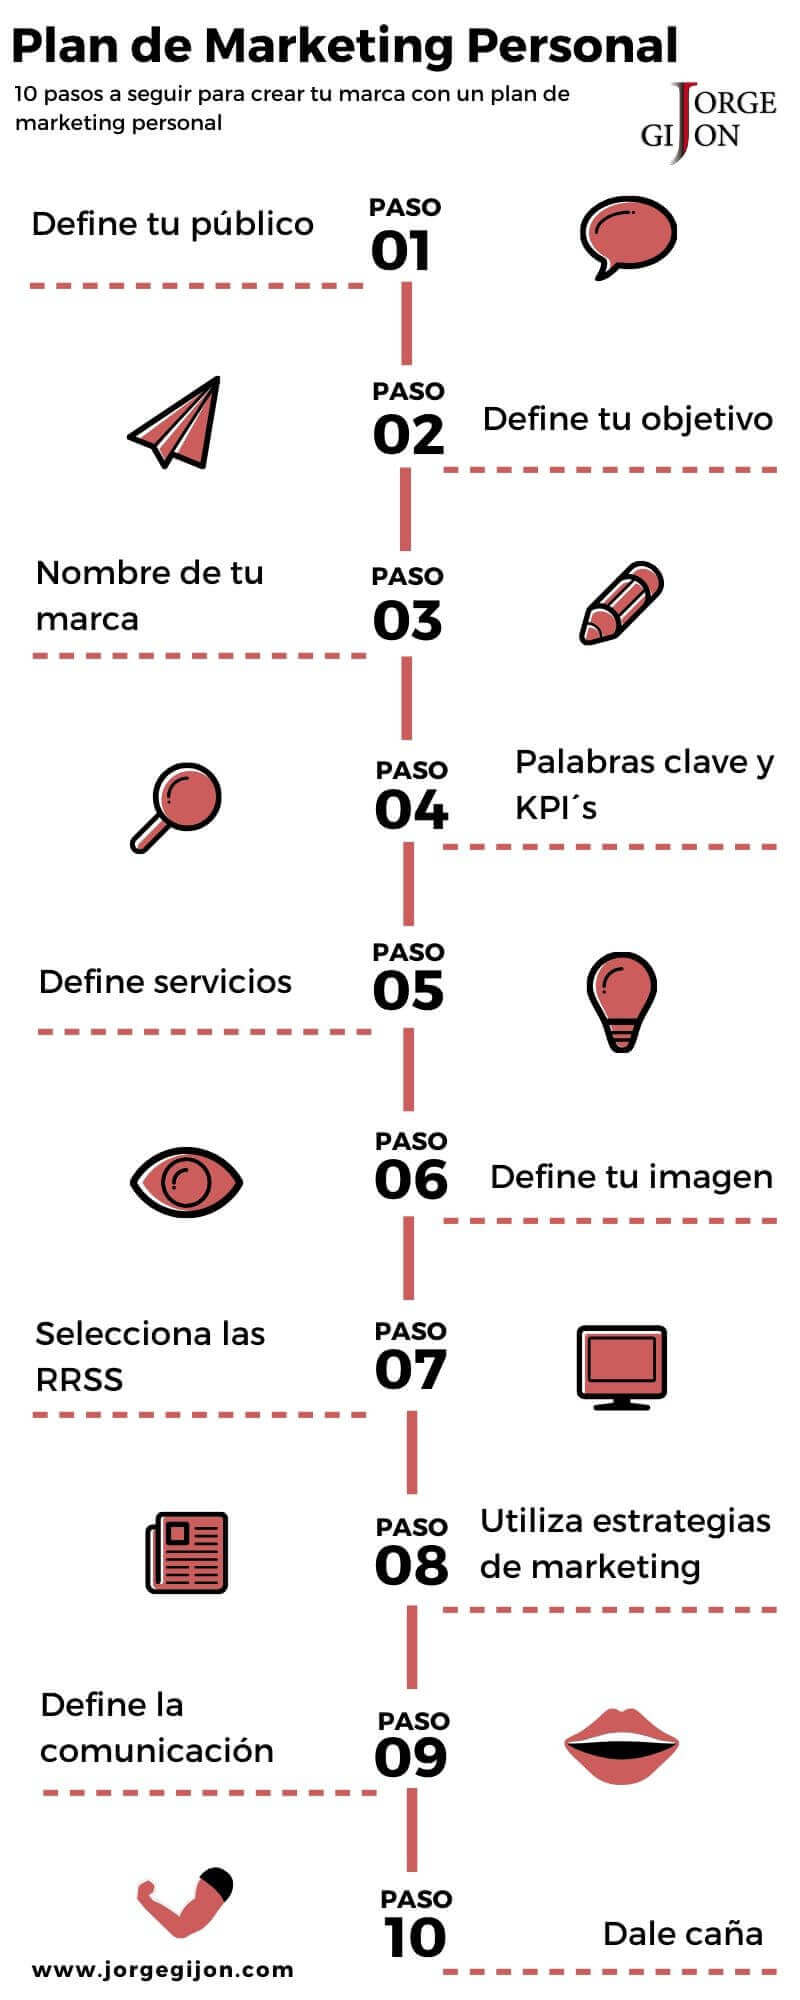 plan de marketing personal infografía